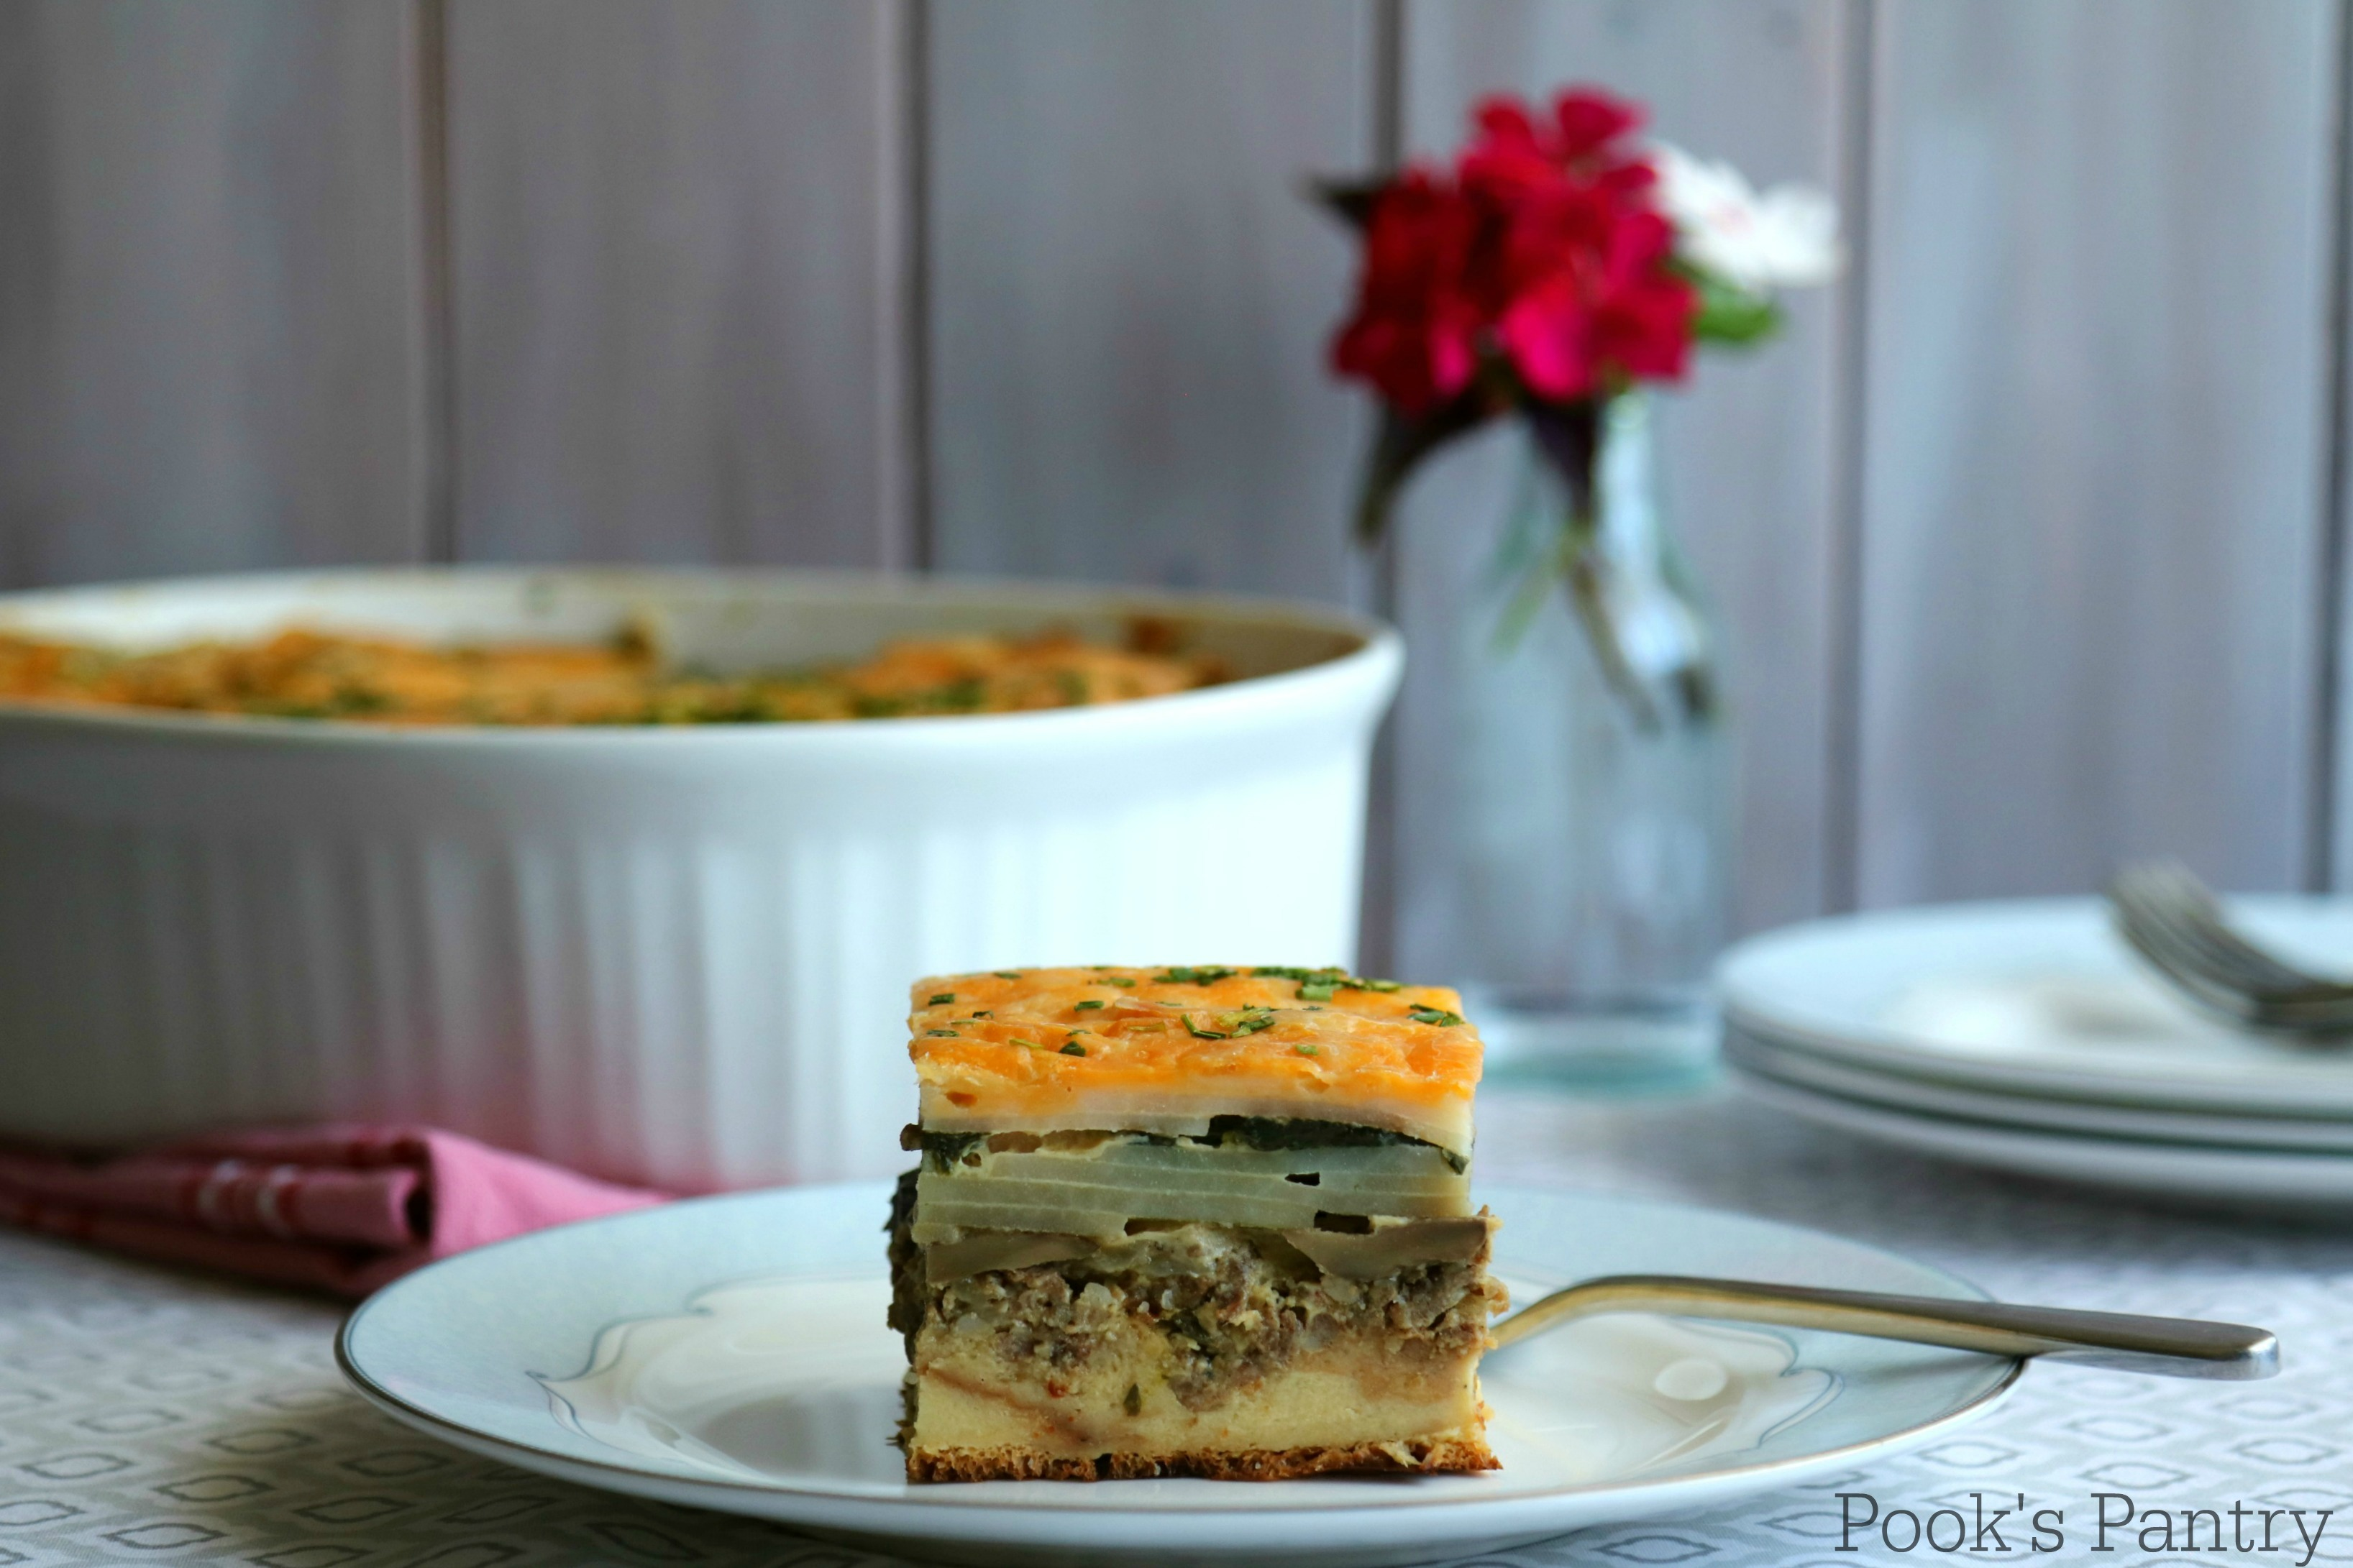 Breakfast Casserole slice on plate with fork